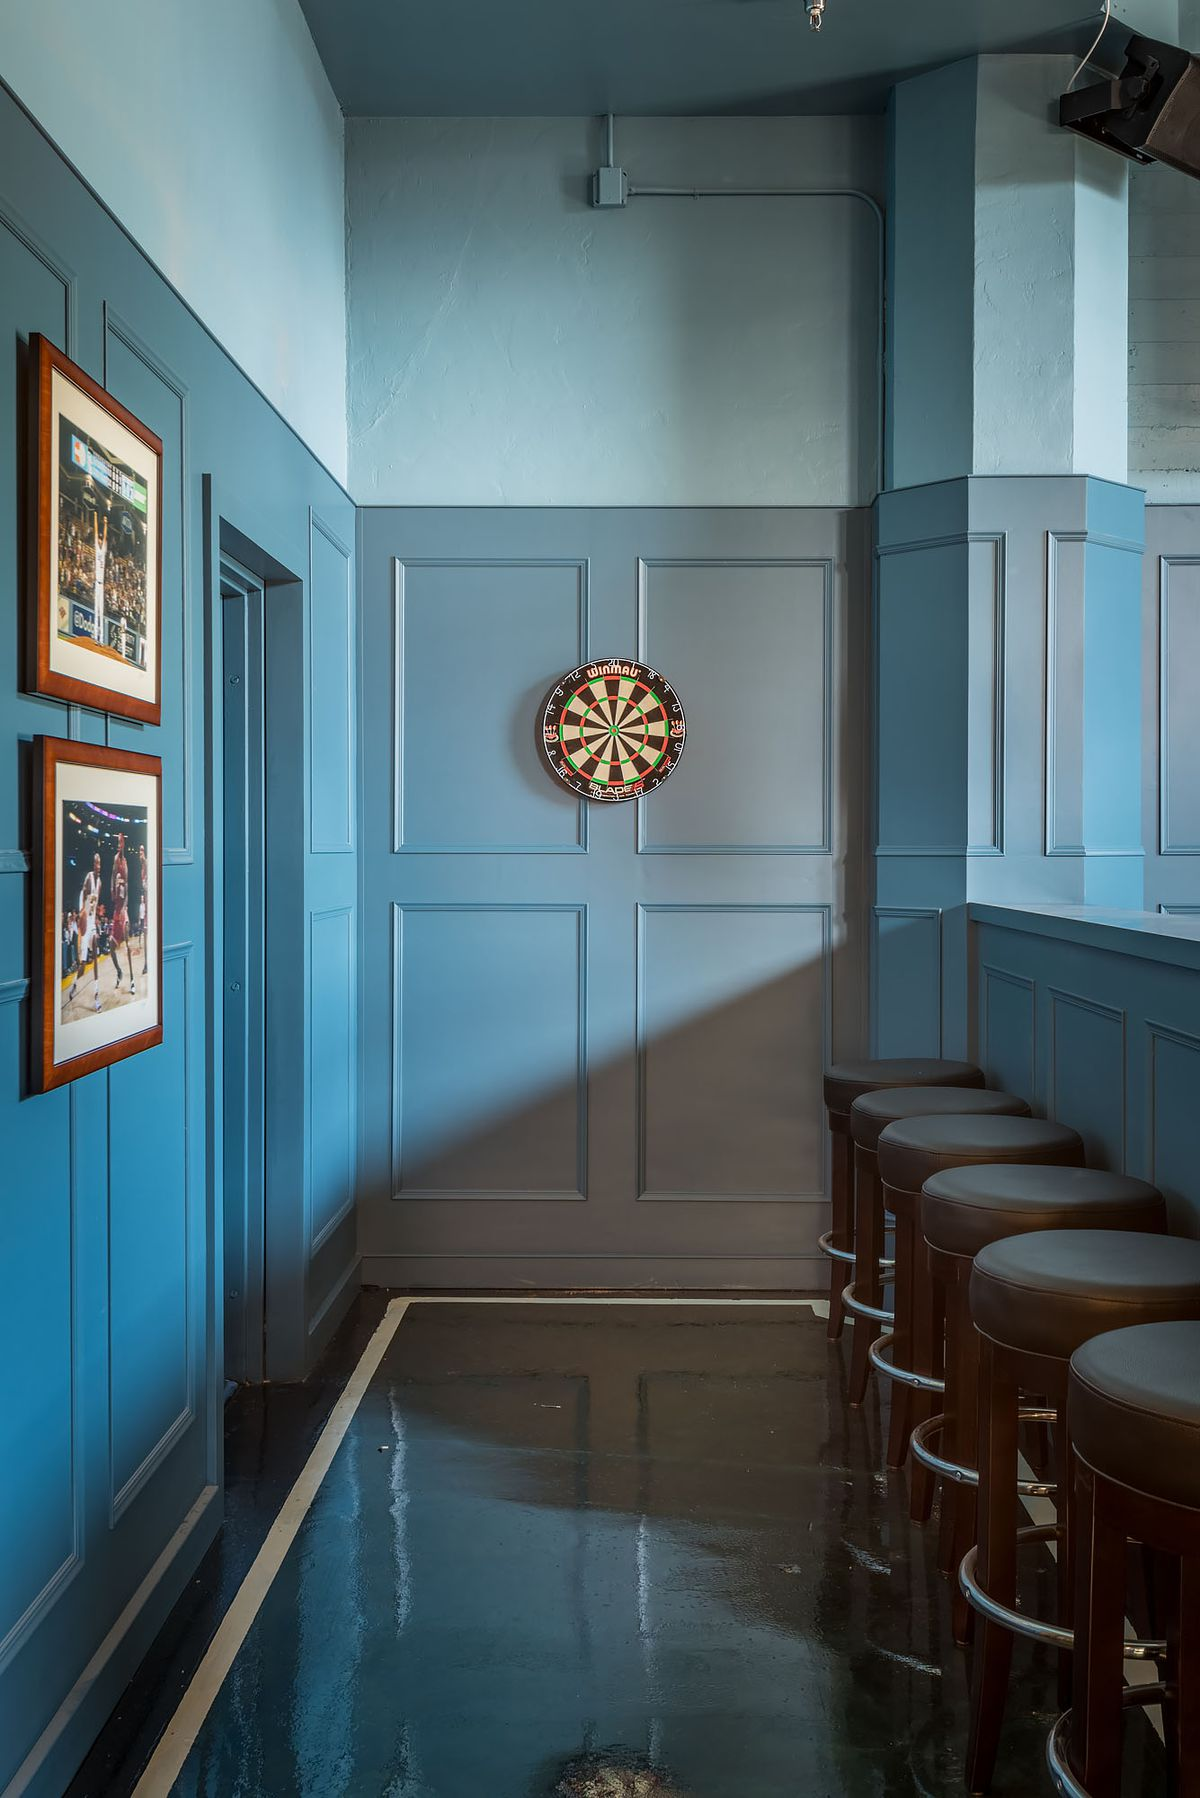 Dartboard with blue walls and barstools to the side.